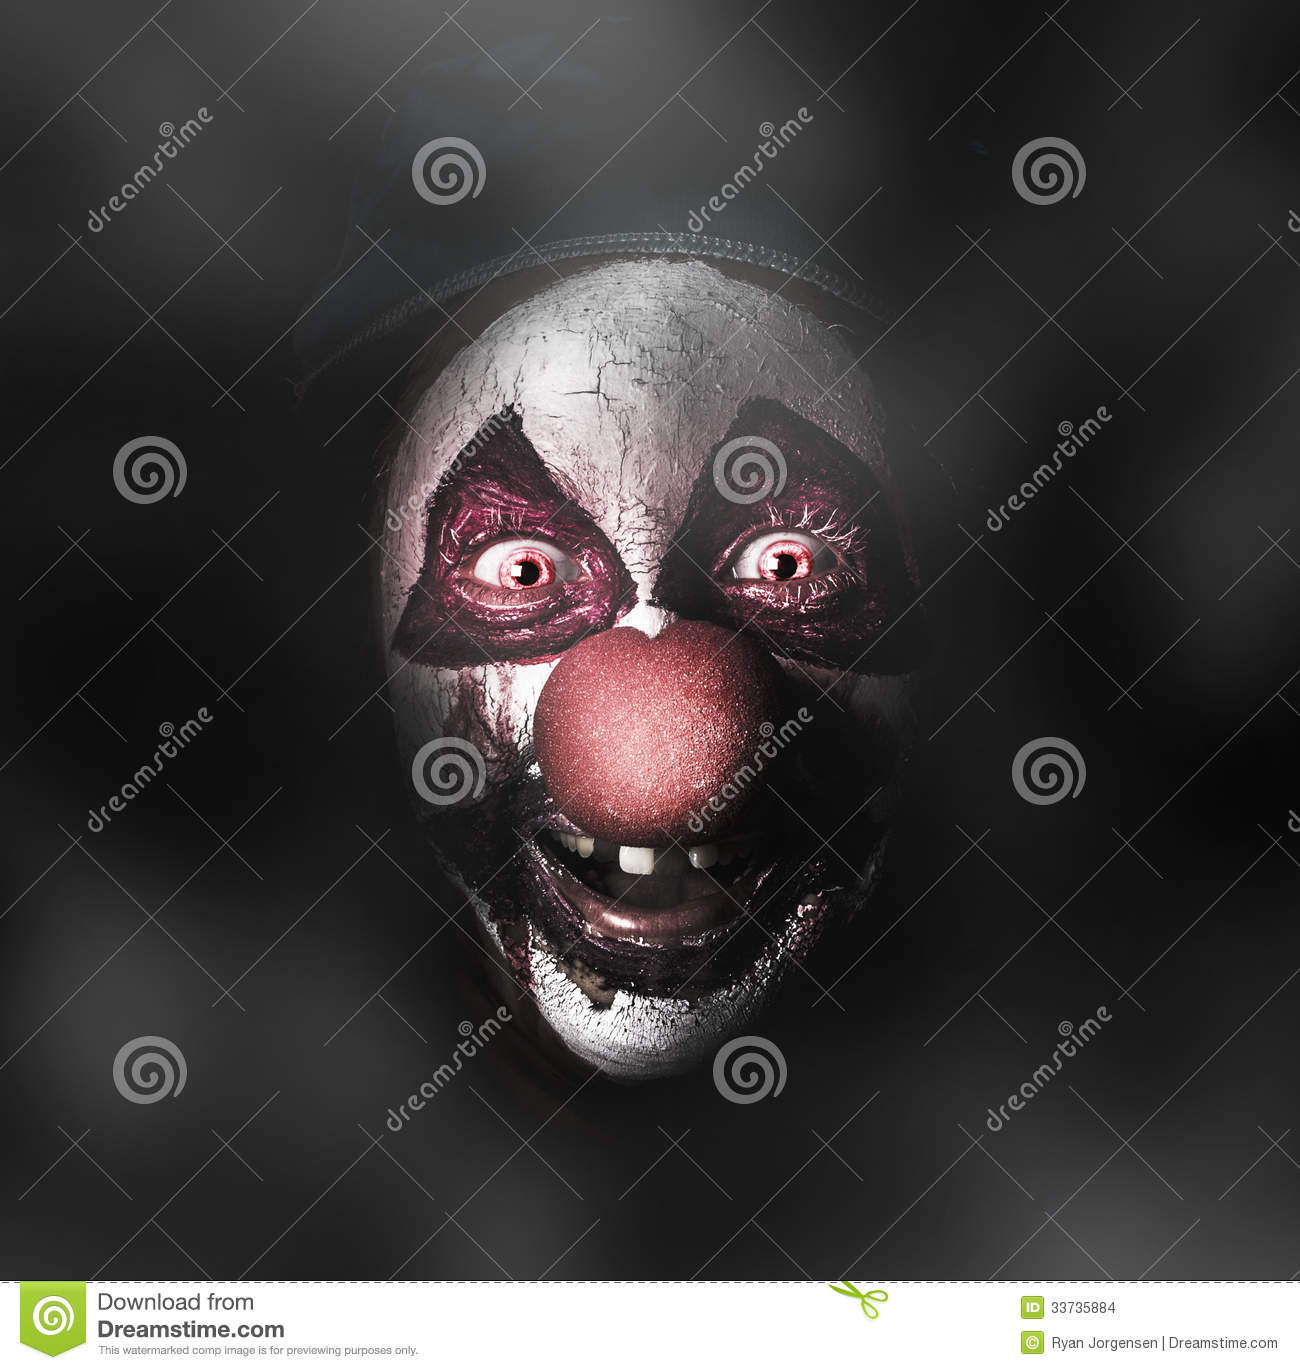 Dark Evil Clown Face With Scary Joker Smile Stock Images - Image ...